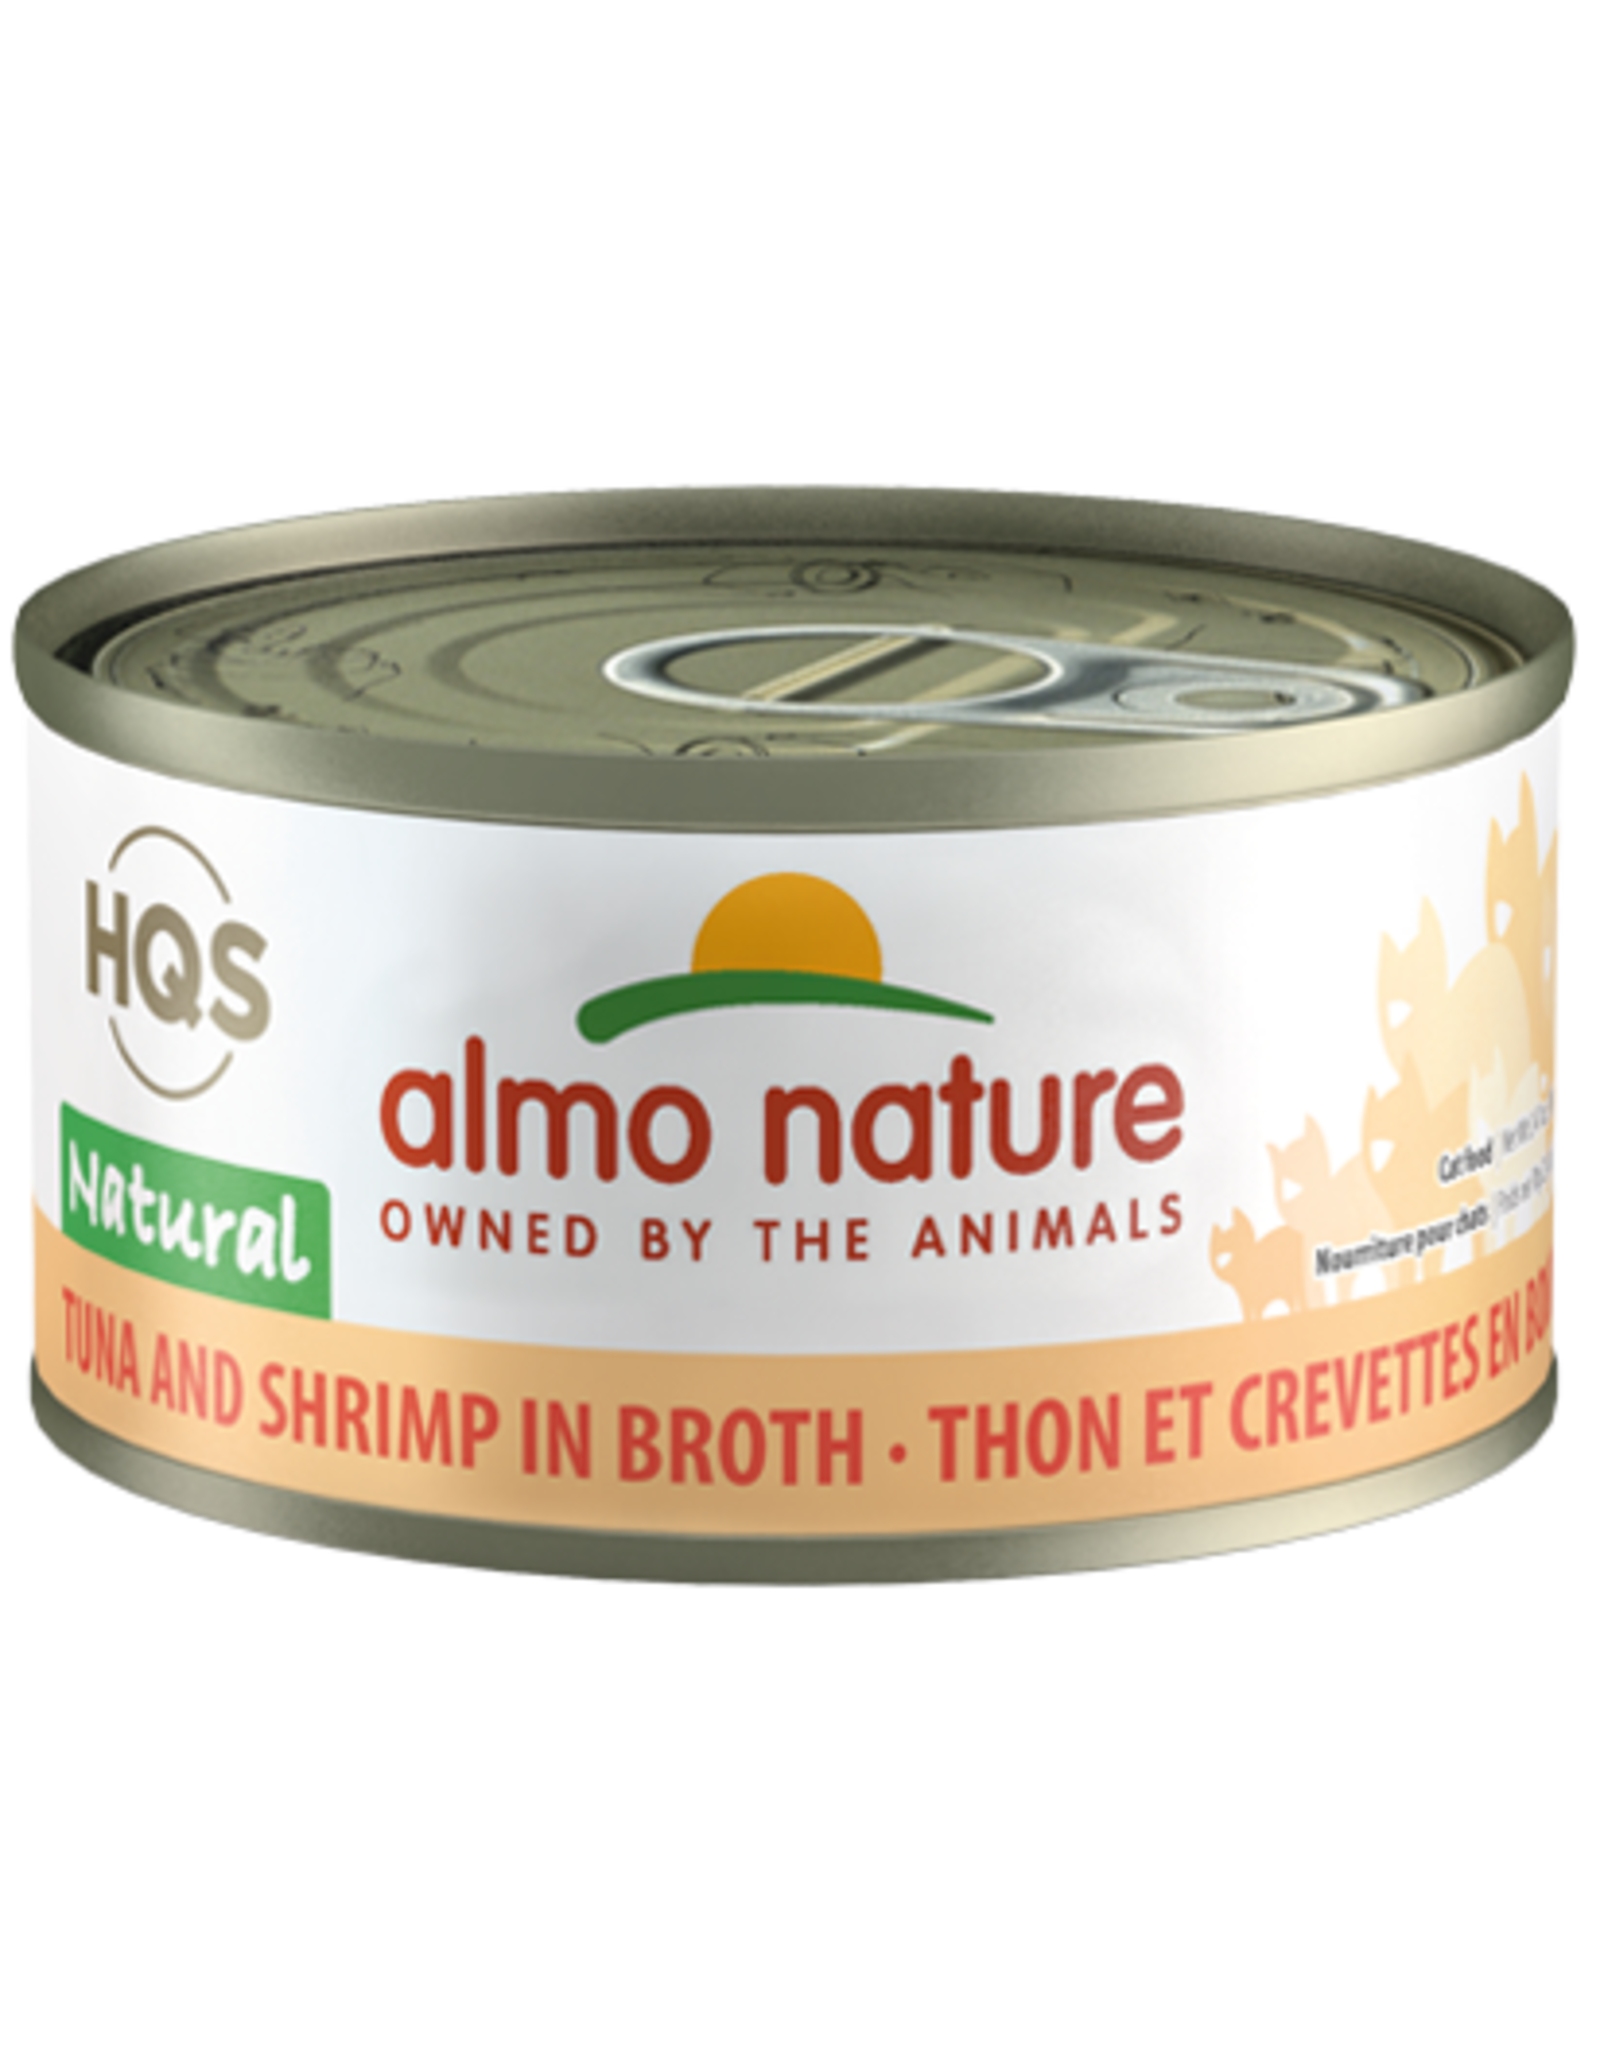 Almo Nature Almo Nature HQS Natural Wet Cat Food Tuna and Shrimp in Broth 2.47oz Can Grain Free